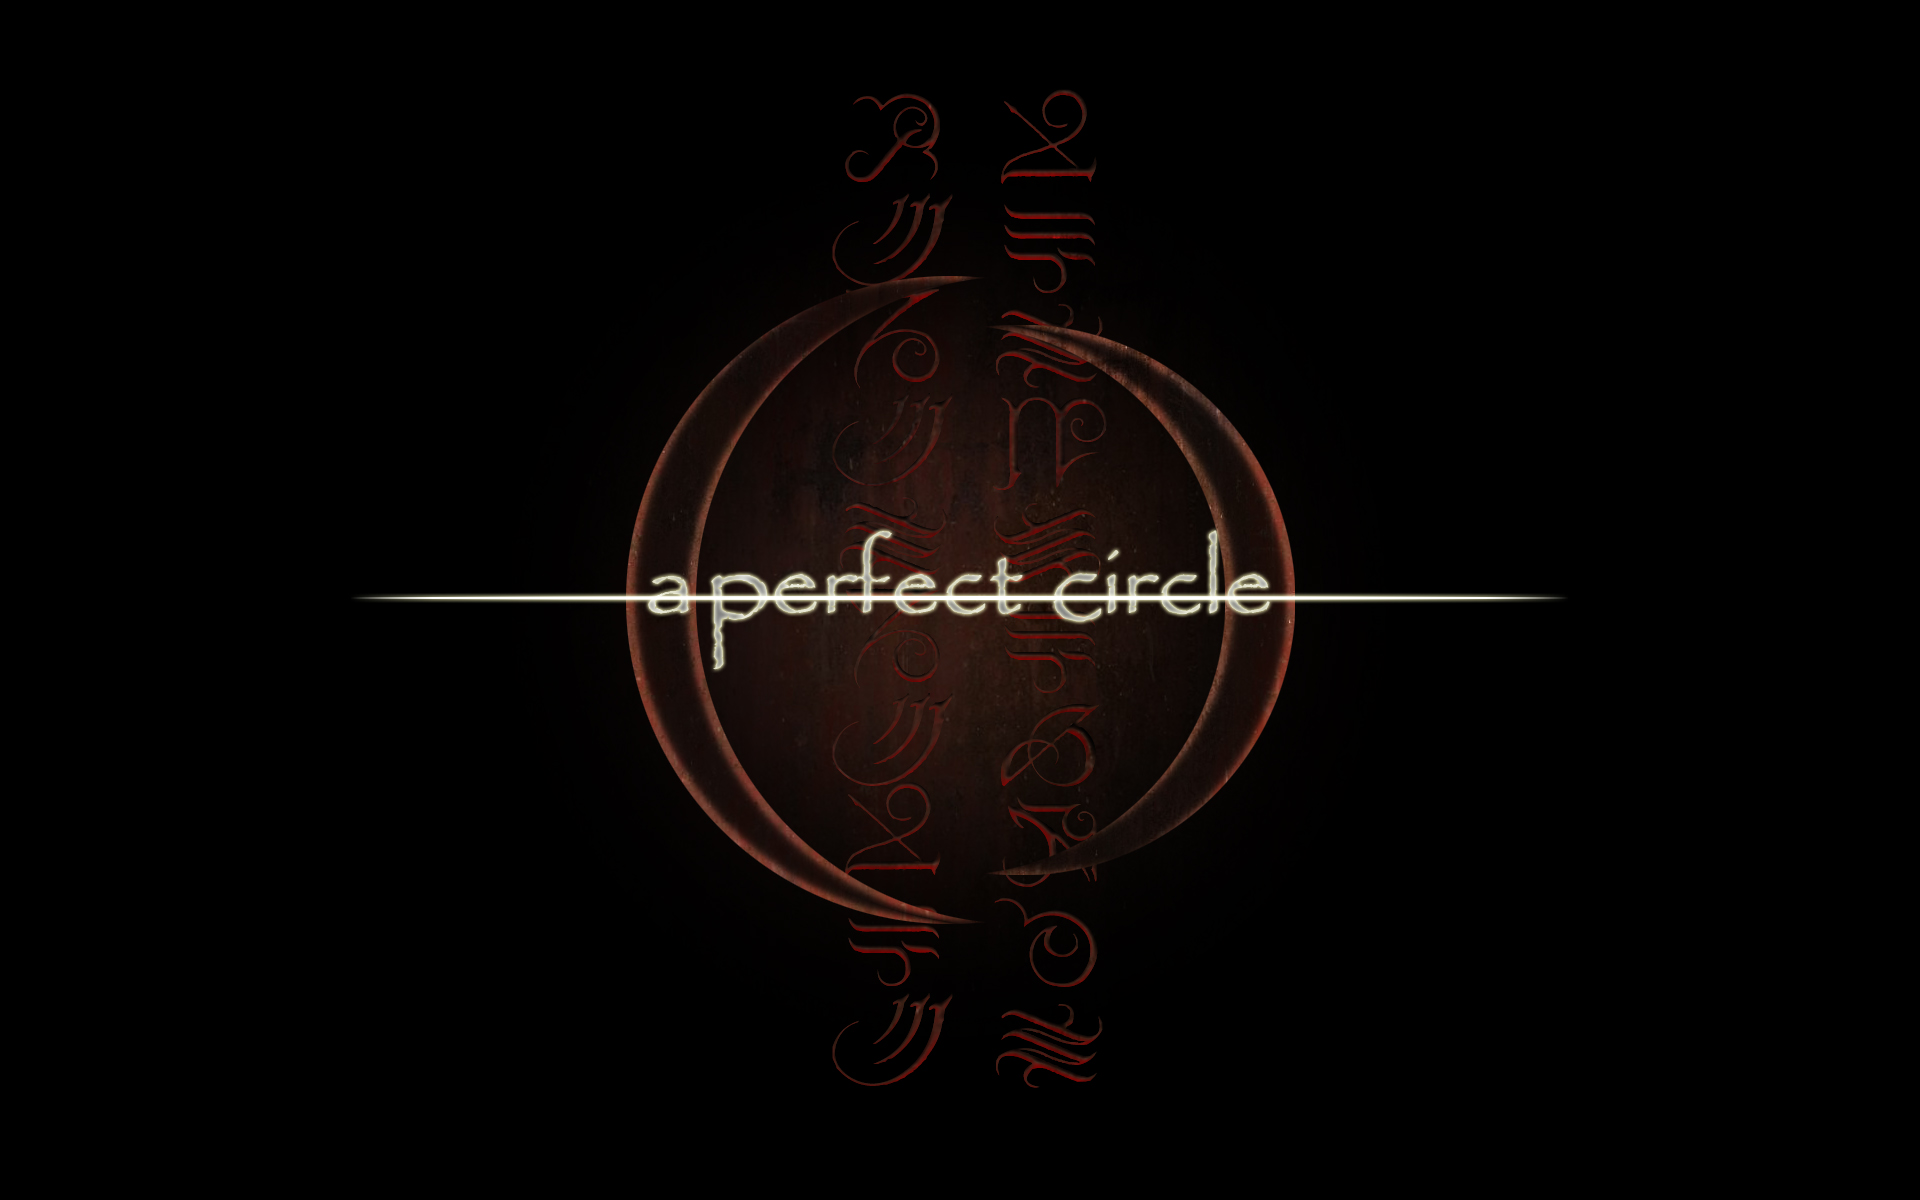 Perfect Circle 1920x1200 by WillGtl 1920x1200